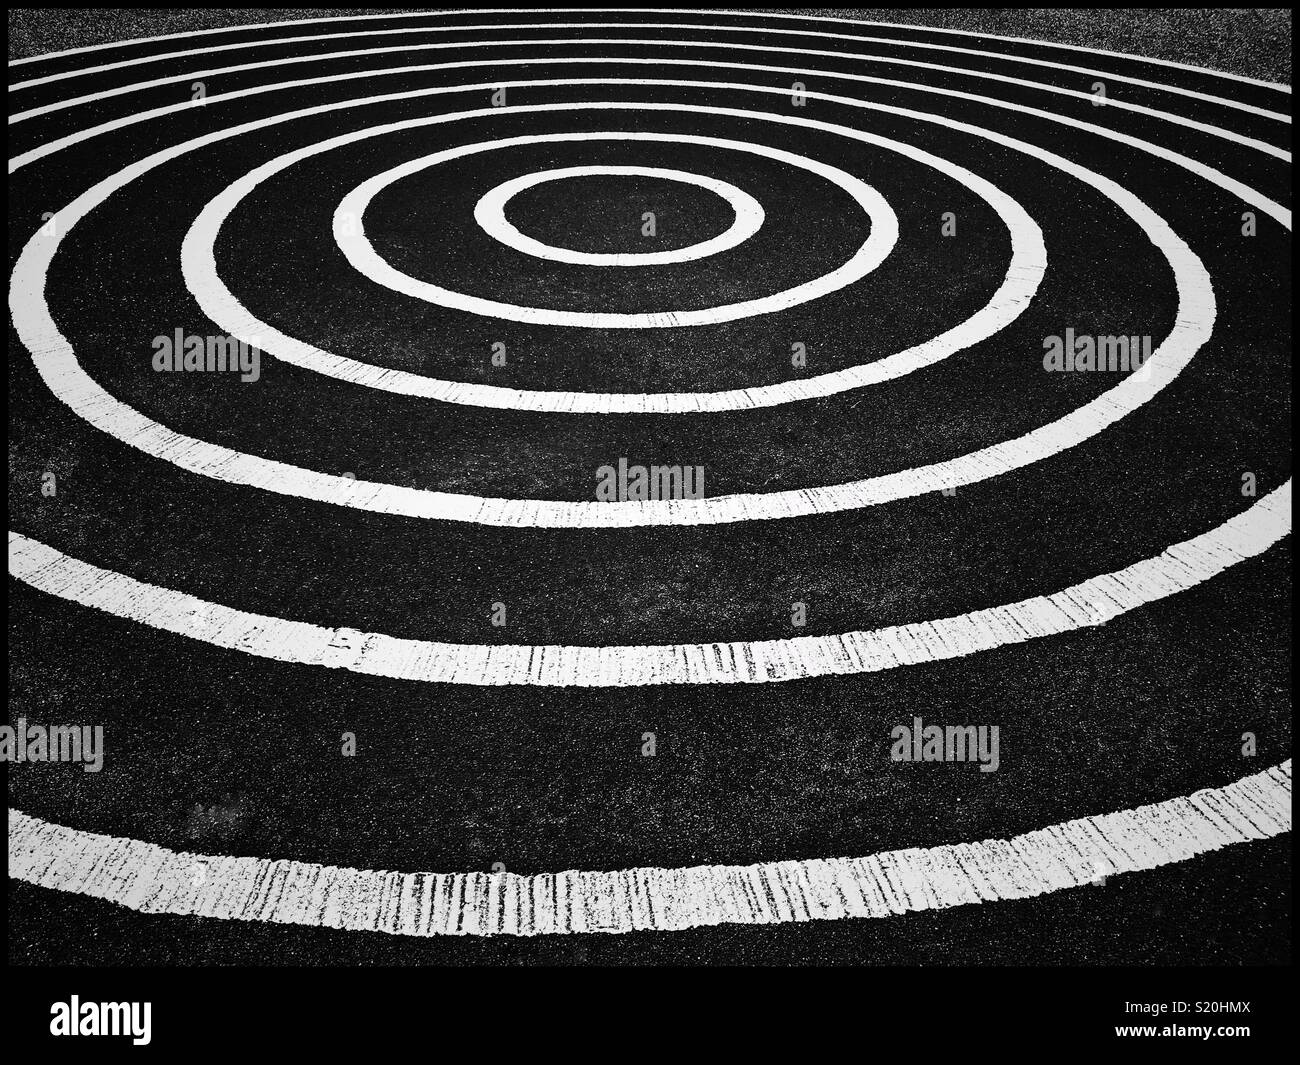 White concentric circles form an interesting pattern. Keep looking at this picture and you'll be going round in circles. Photo Credit - © COLIN HOSKINS. - Stock Image